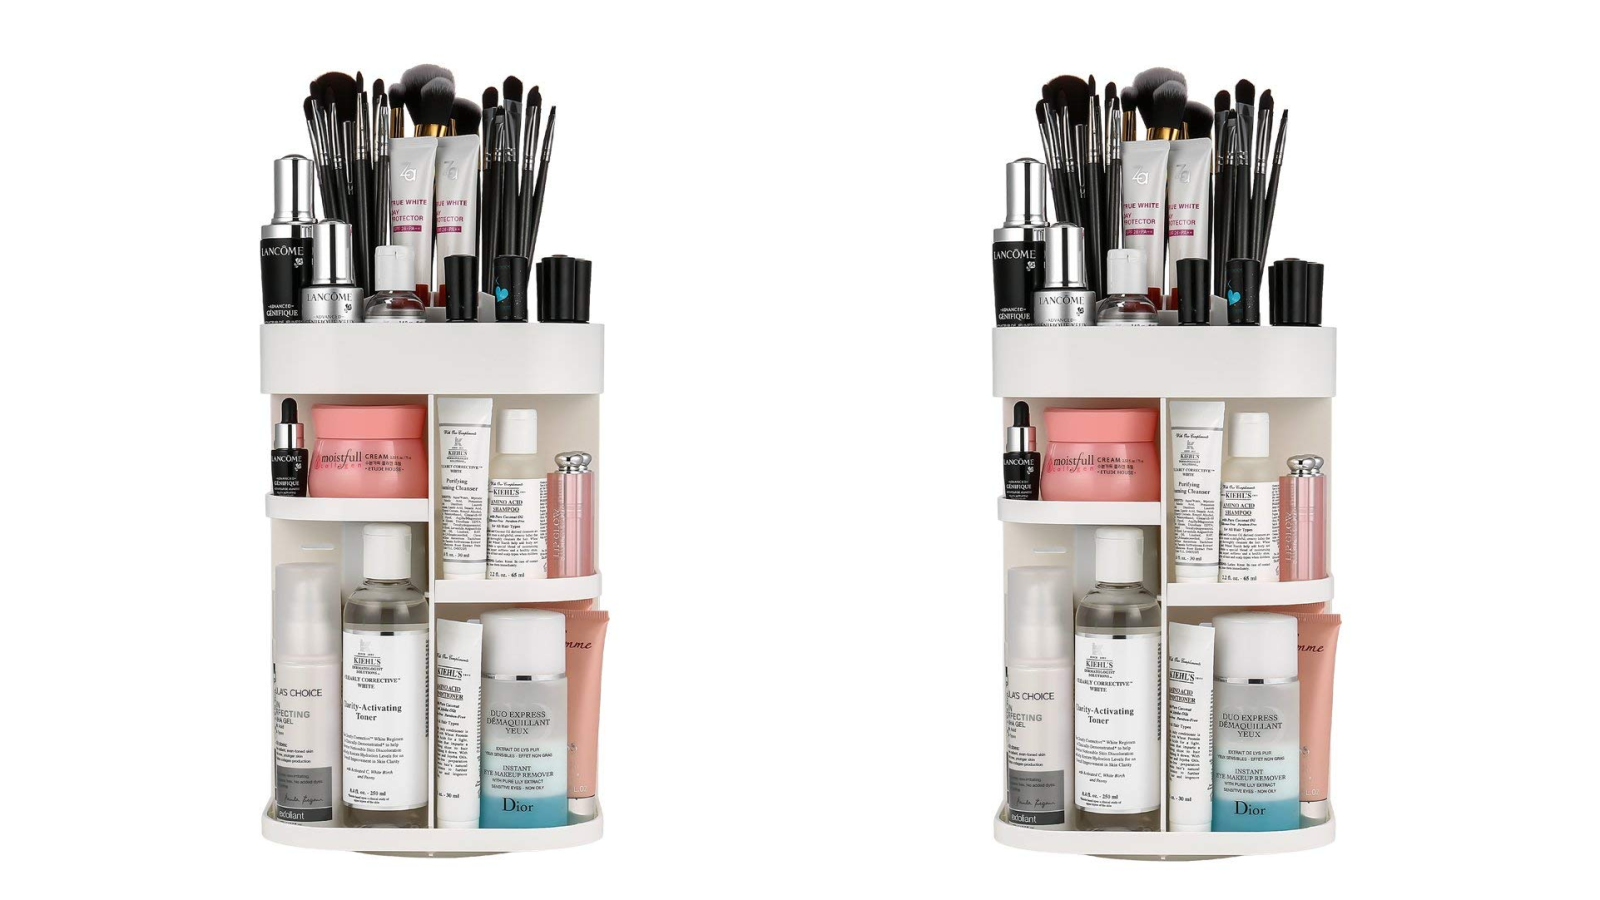 Have access to all of your cosmetics w/ this adjustable rotating organizer for $15 ($10 off)